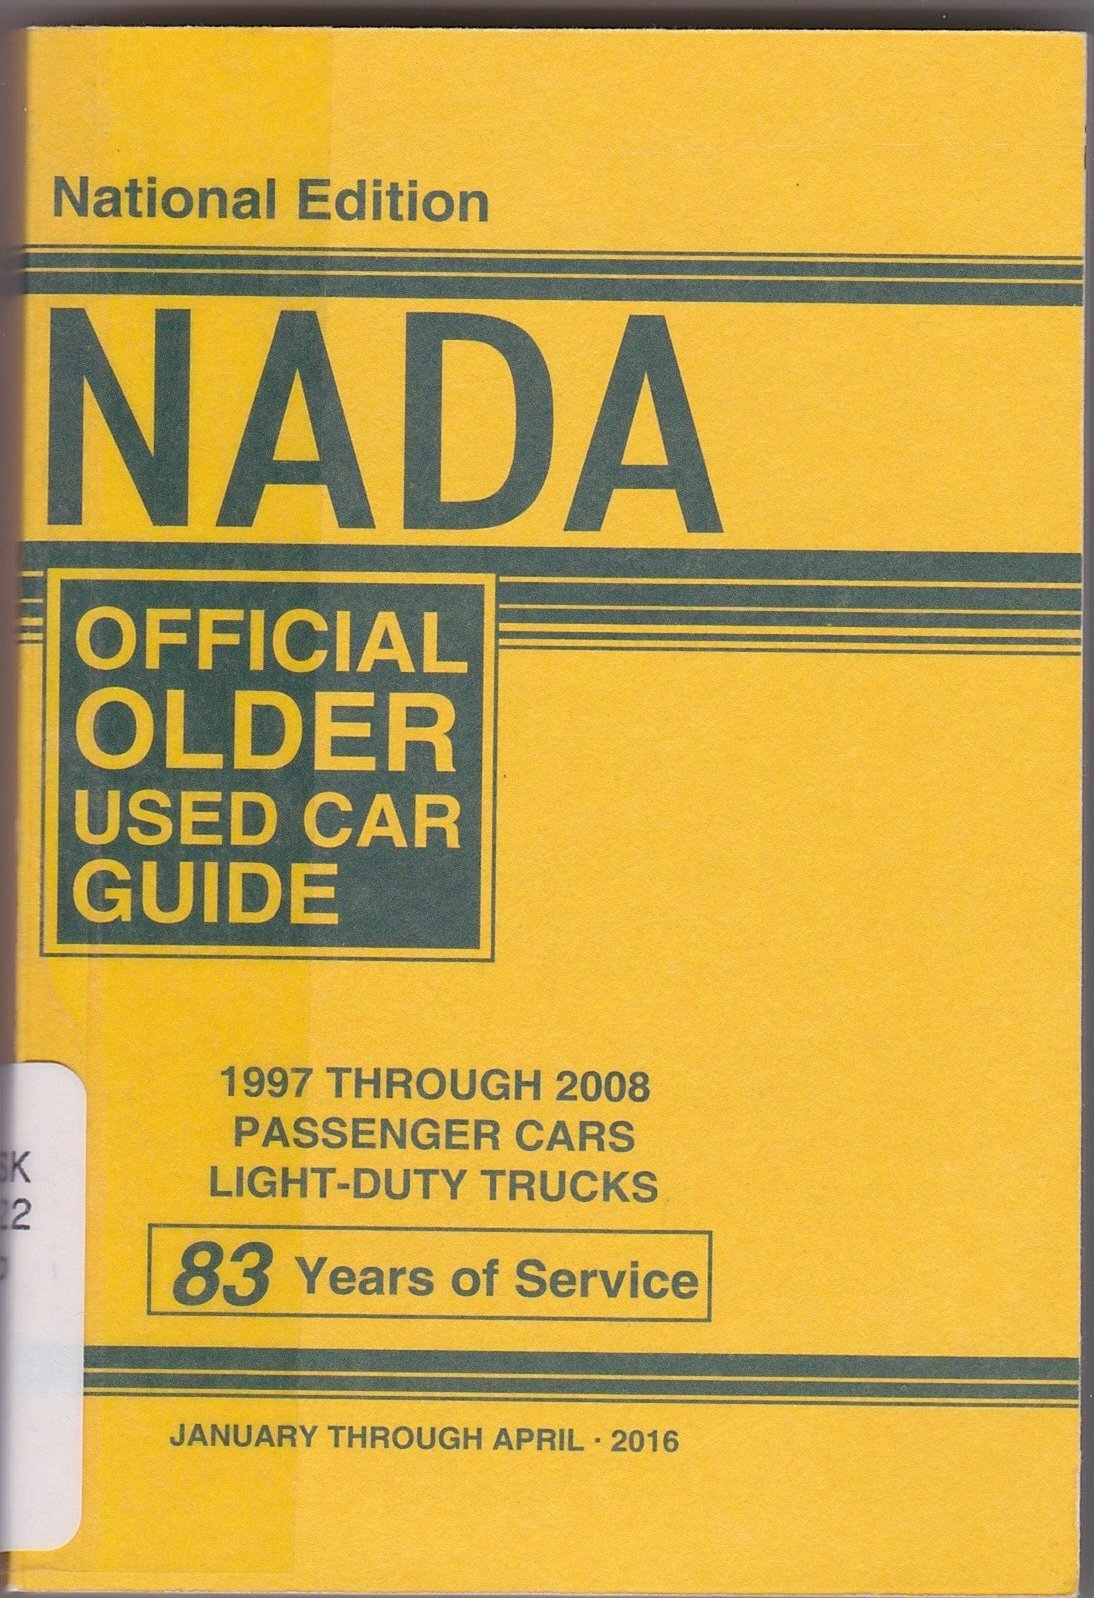 Nada Official Older Used Car Guide 1997 Through 2008 Passenger Cars And Light Duty Trucks National Edition January Through April 2016 Nada Editors Amazon Com Books